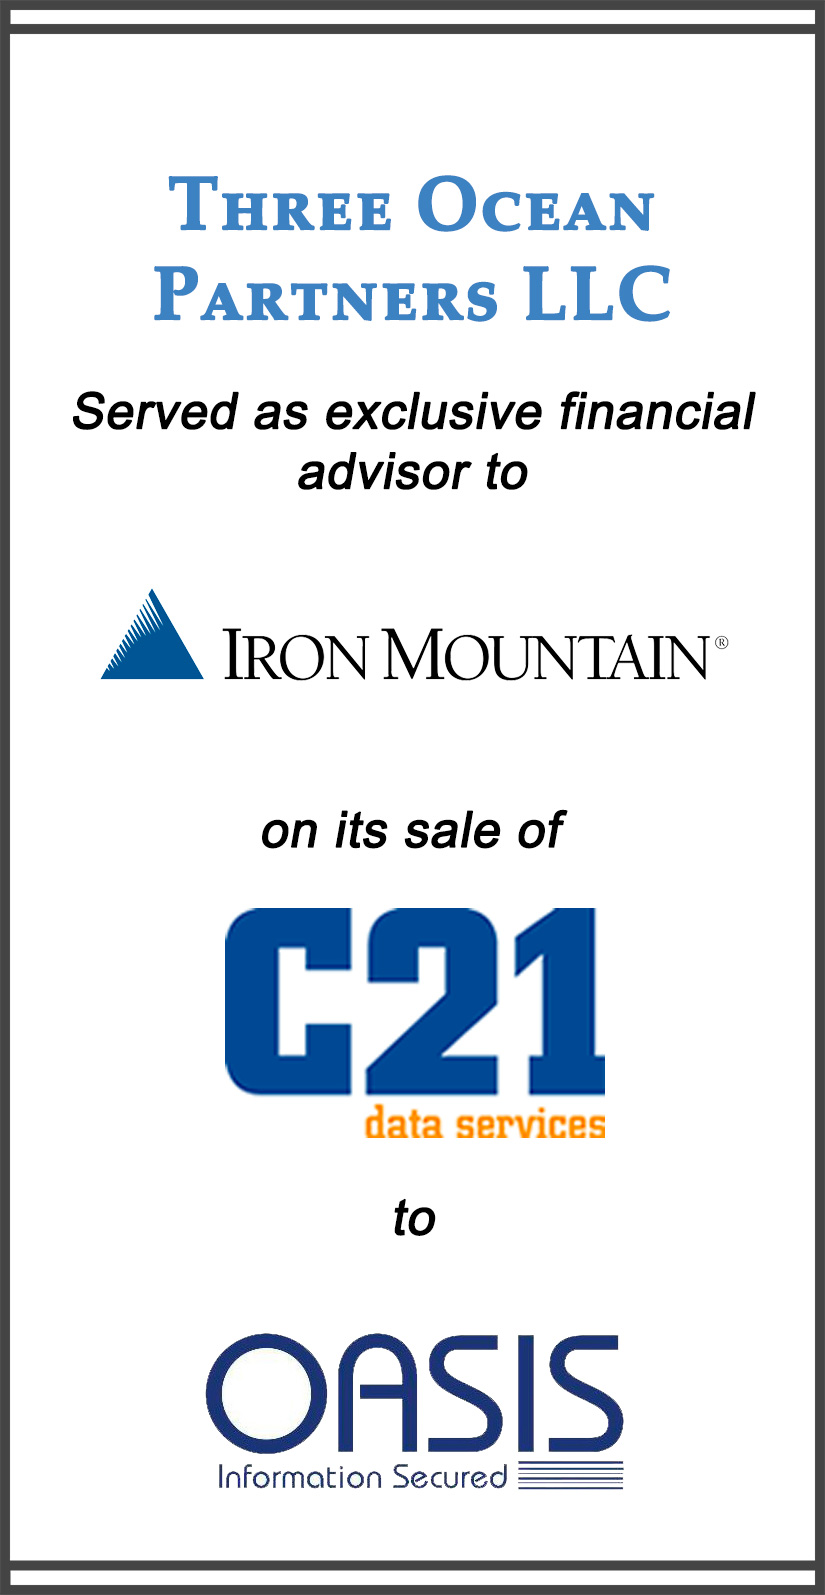 ironmountain-c21.jpg